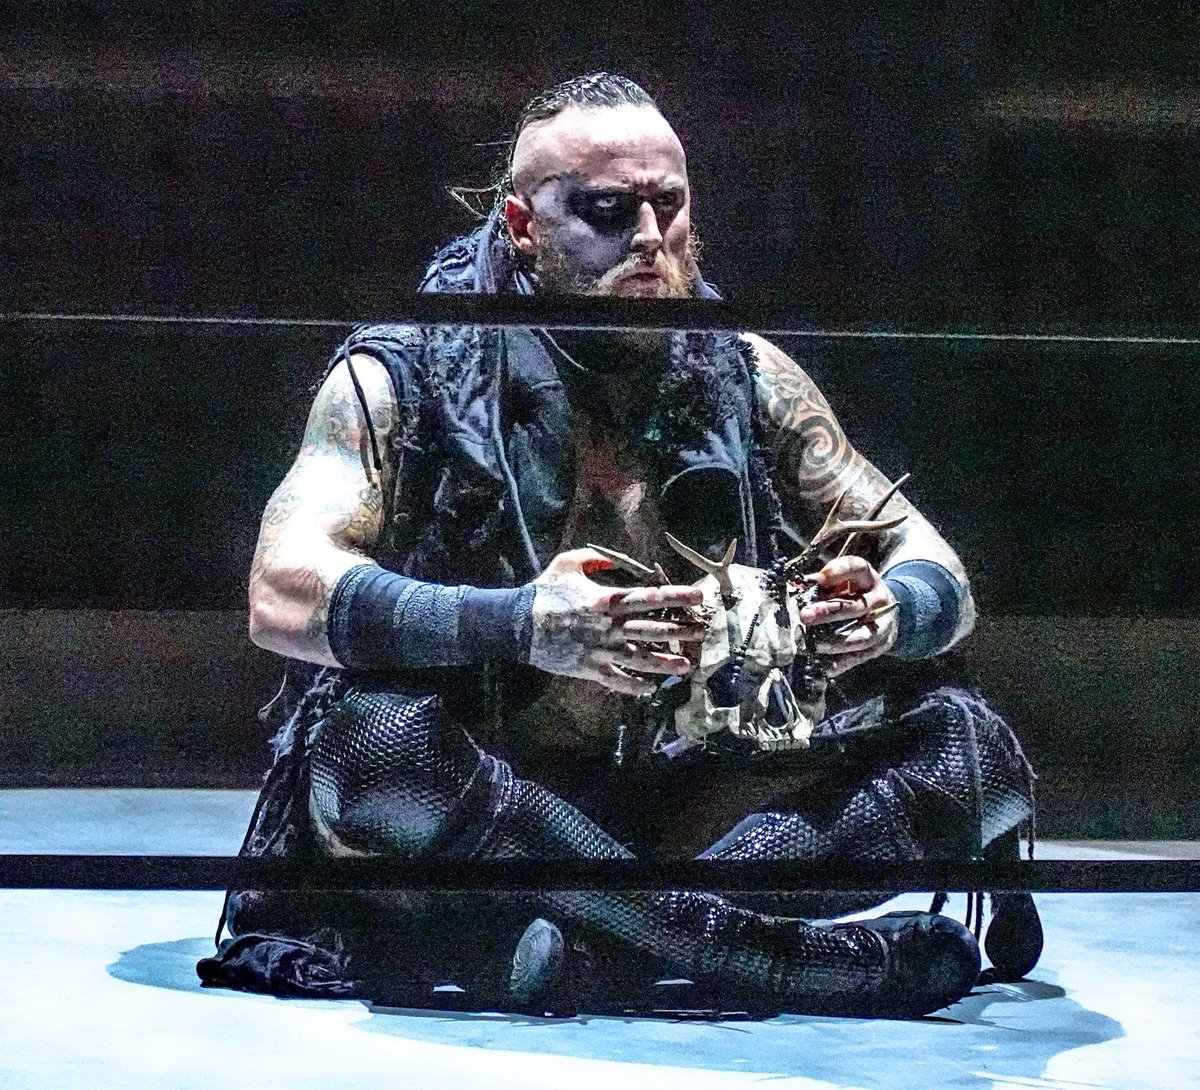 RT @TommyEnd: I told you. https://t.co/QXRISJQ0bY